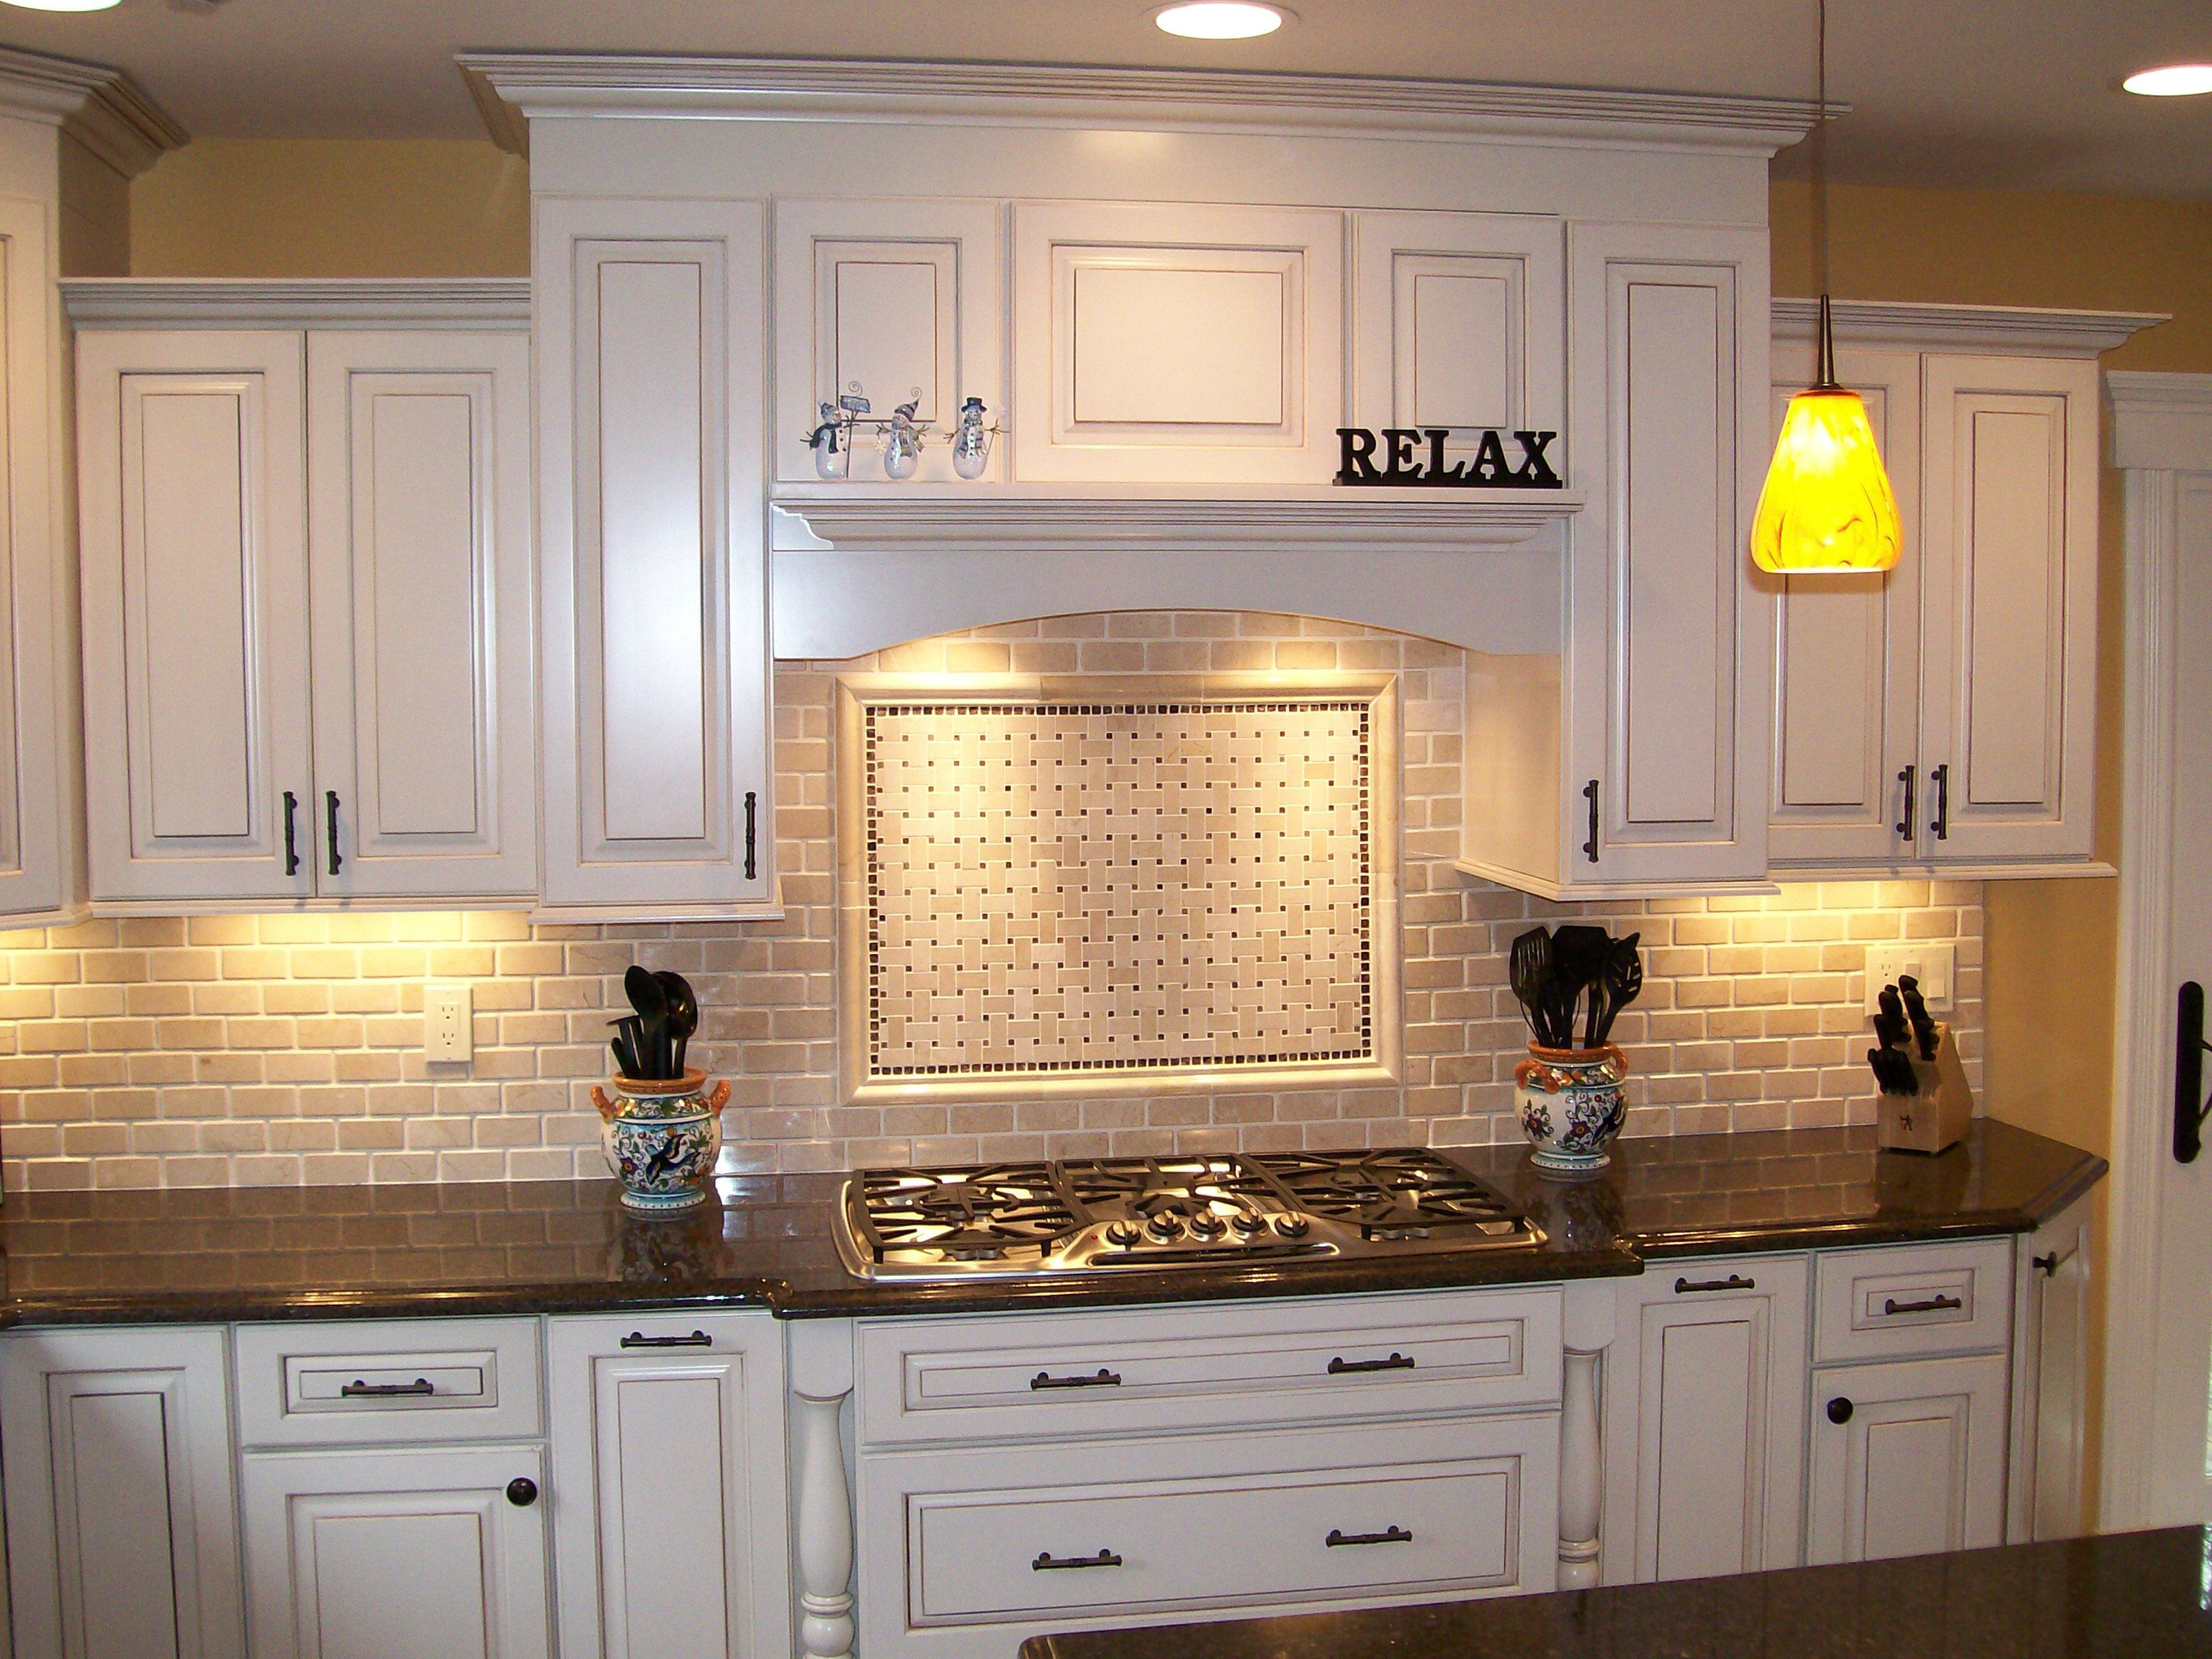 Delightful kitchen backsplash with black countertops interior